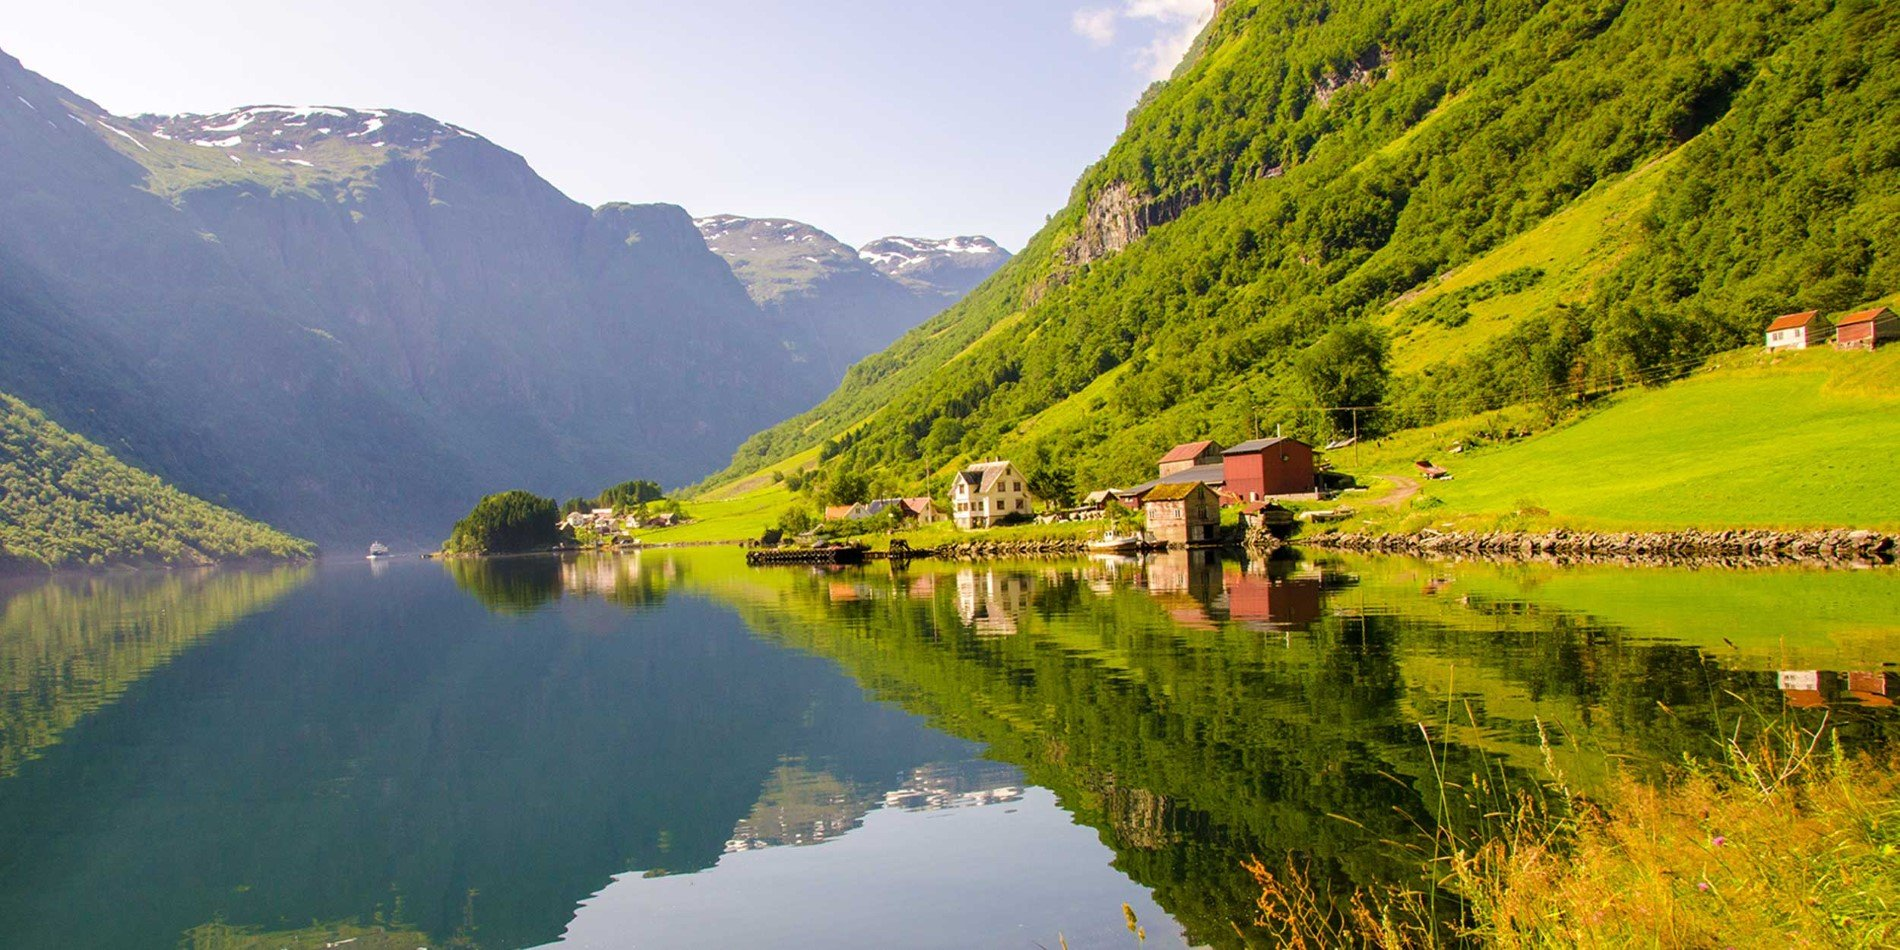 Experience the breathtaking Nærøyfjord on this tour